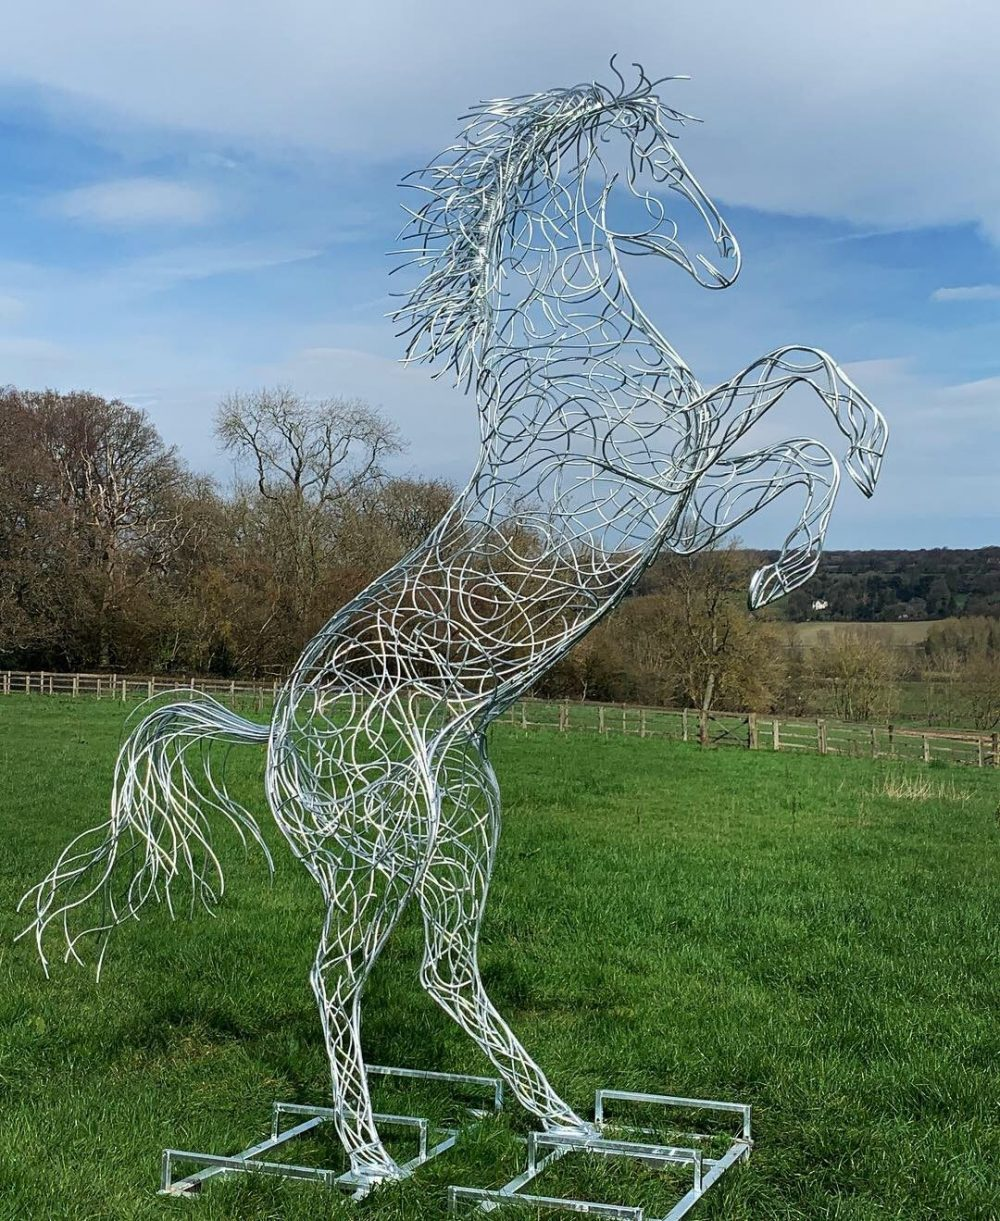 Rearing Horse Sculpture On A Sunny Day